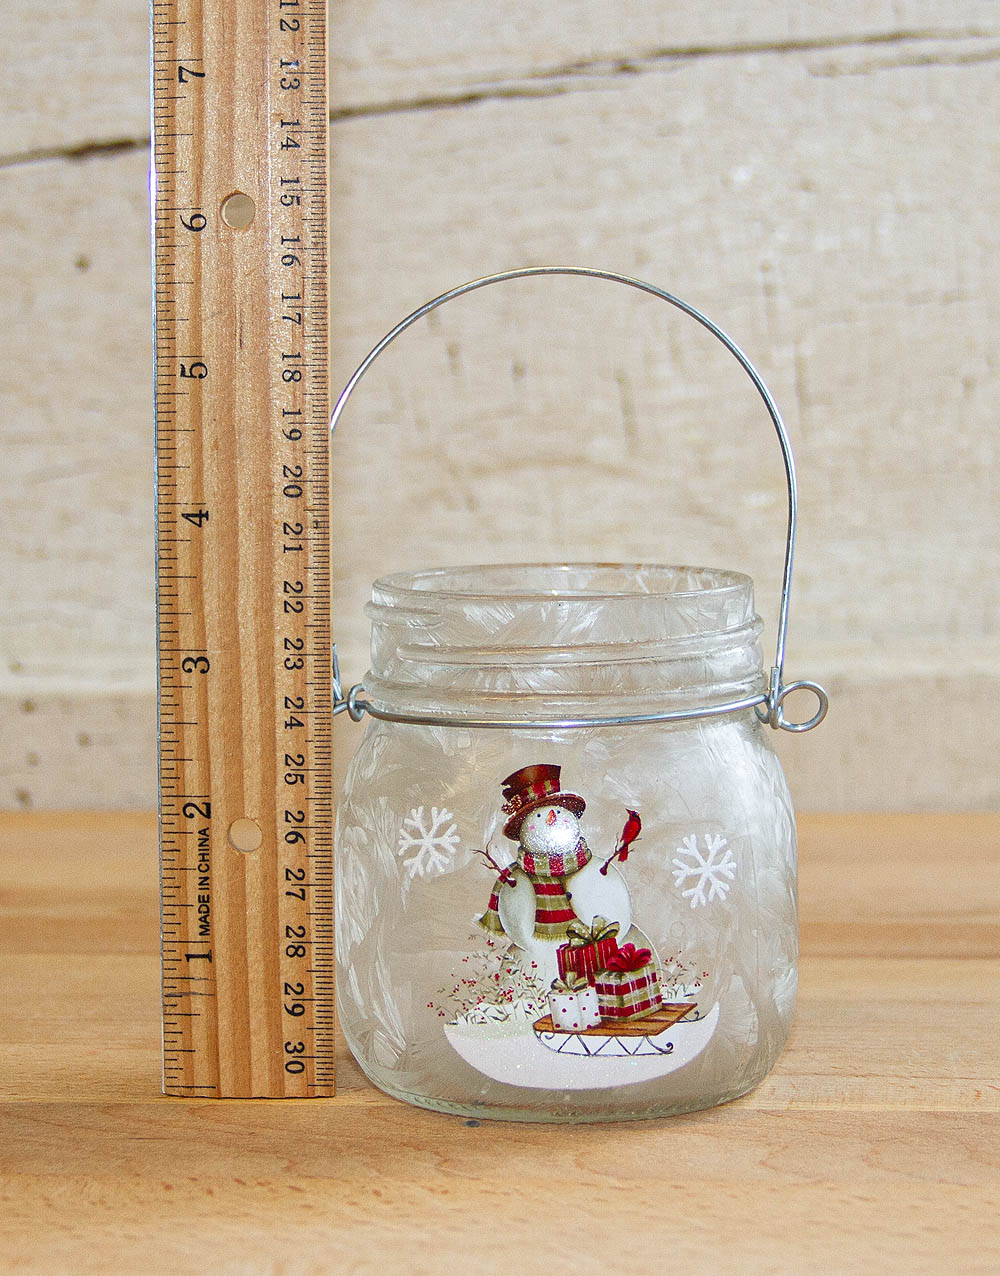 snowman with ruler